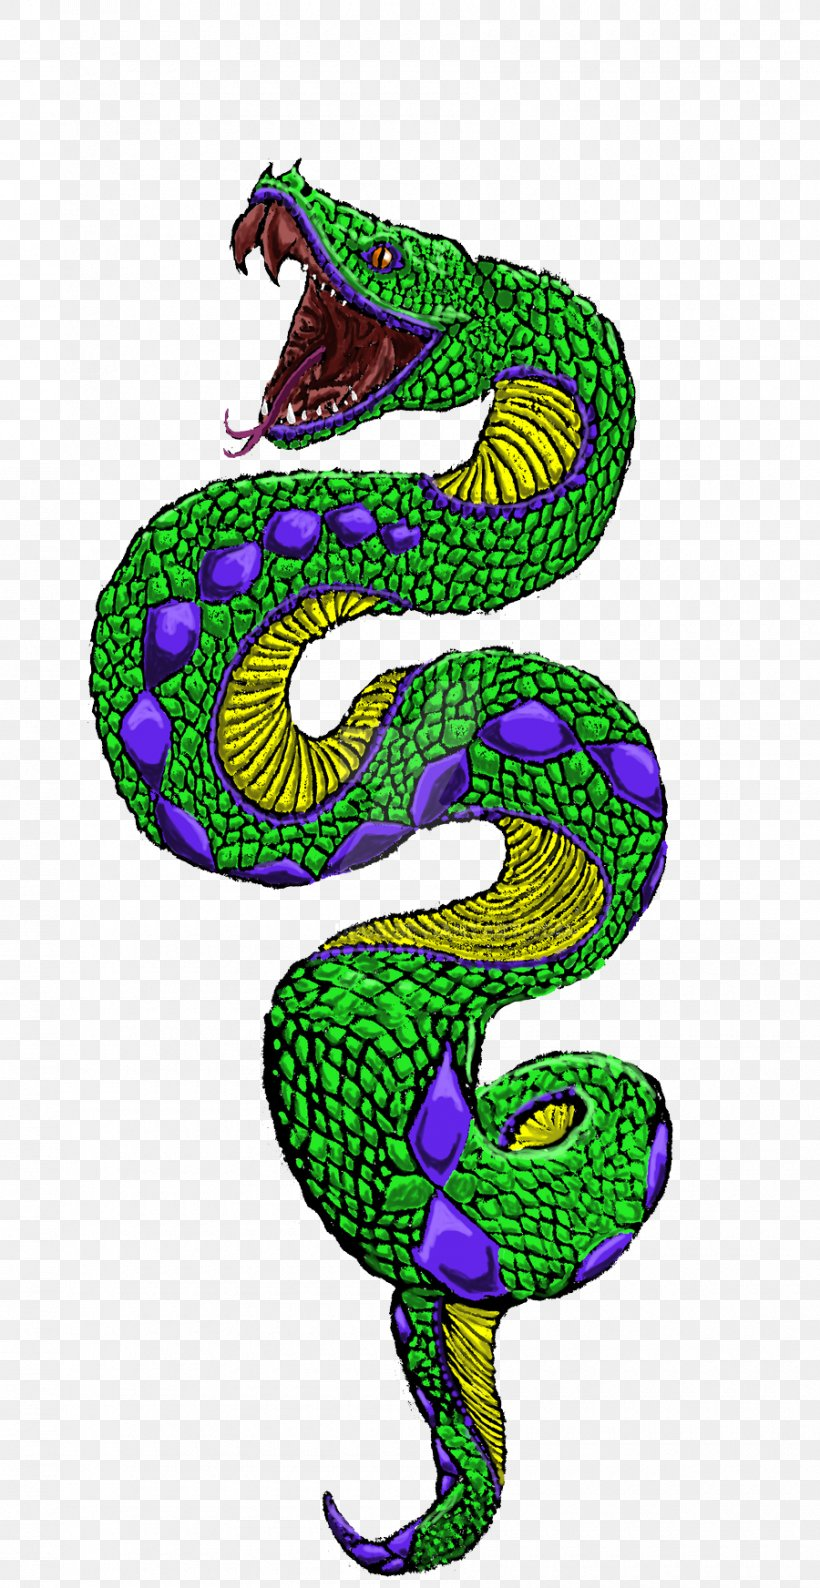 Cartoon Snake Clipart Free Download Clip Art Snake Clipart Transparent  Background Image Provided - EpiCentro Festival